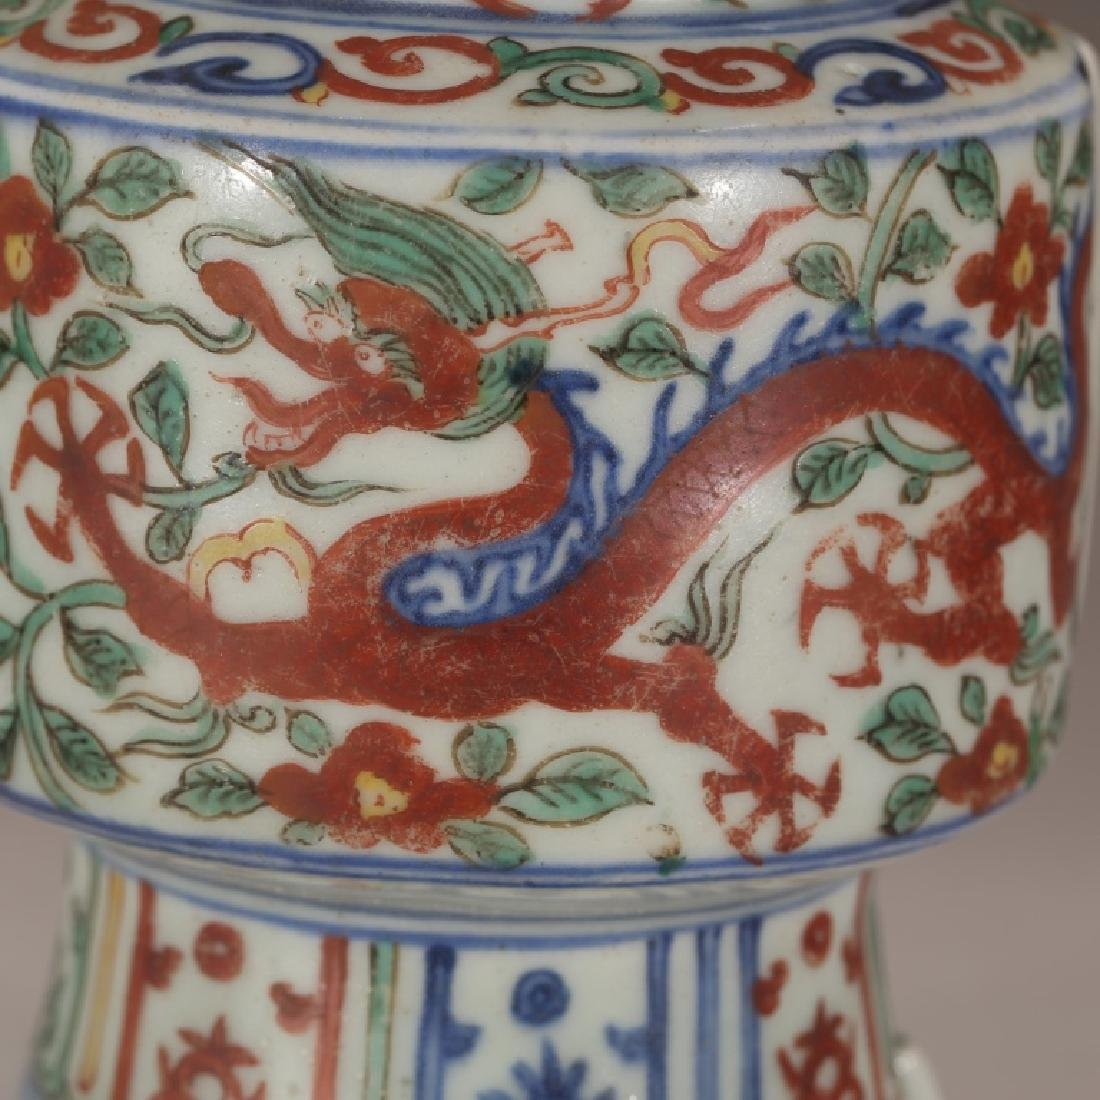 Chinese Qing Dynasty Archaic Wucai Porcelain Vase - 6